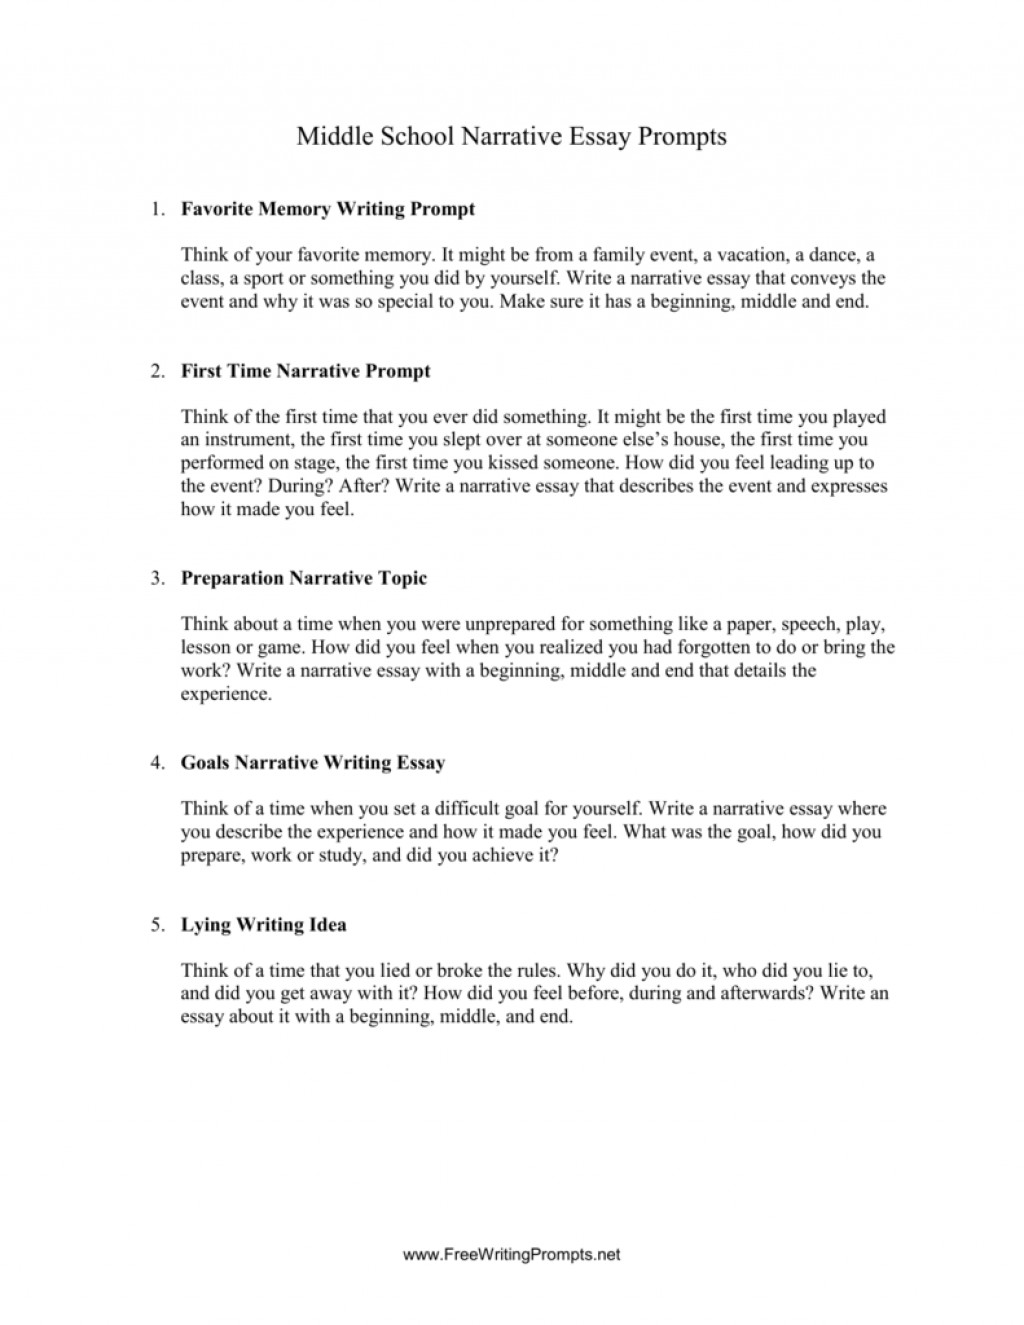 008 Essay Example Narrative Prompts 008000920 1 Fascinating Writing 5th Grade Common Core 4th Large